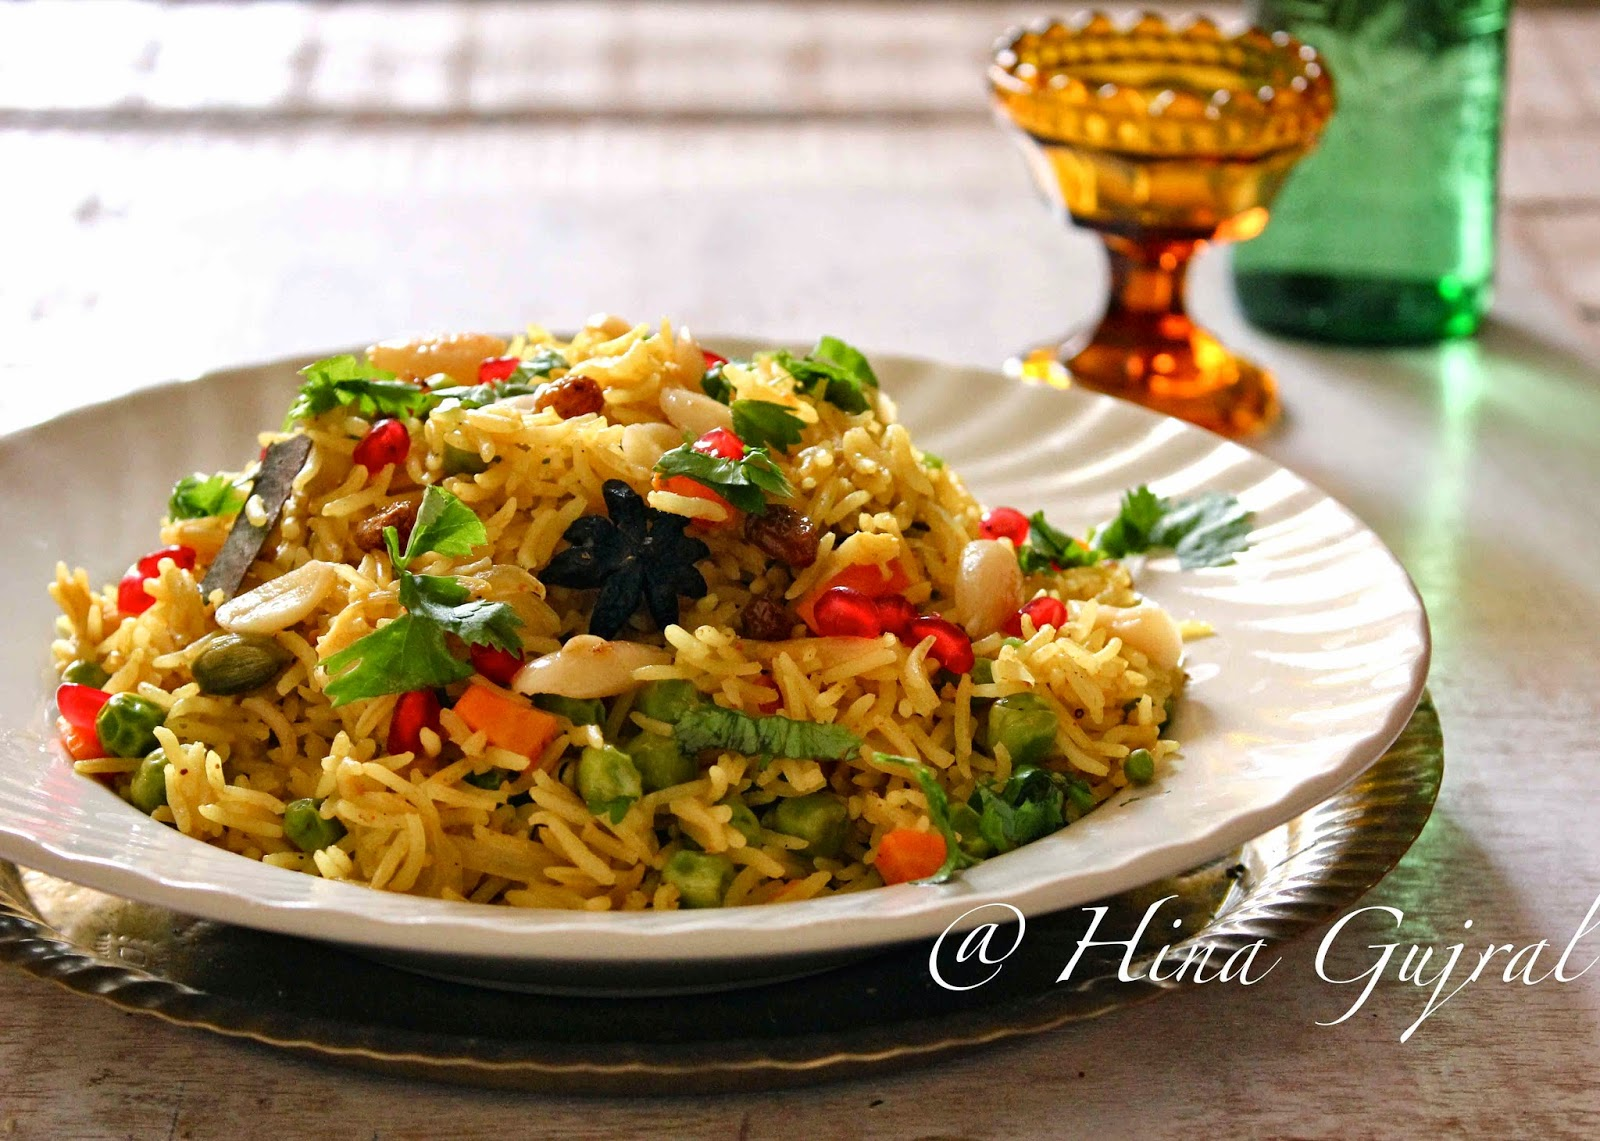 Mediterranean Brown Rice Pilaf is a simple and delicious vegetarian, gluten free recipe. Find out how to make it in few simple steps